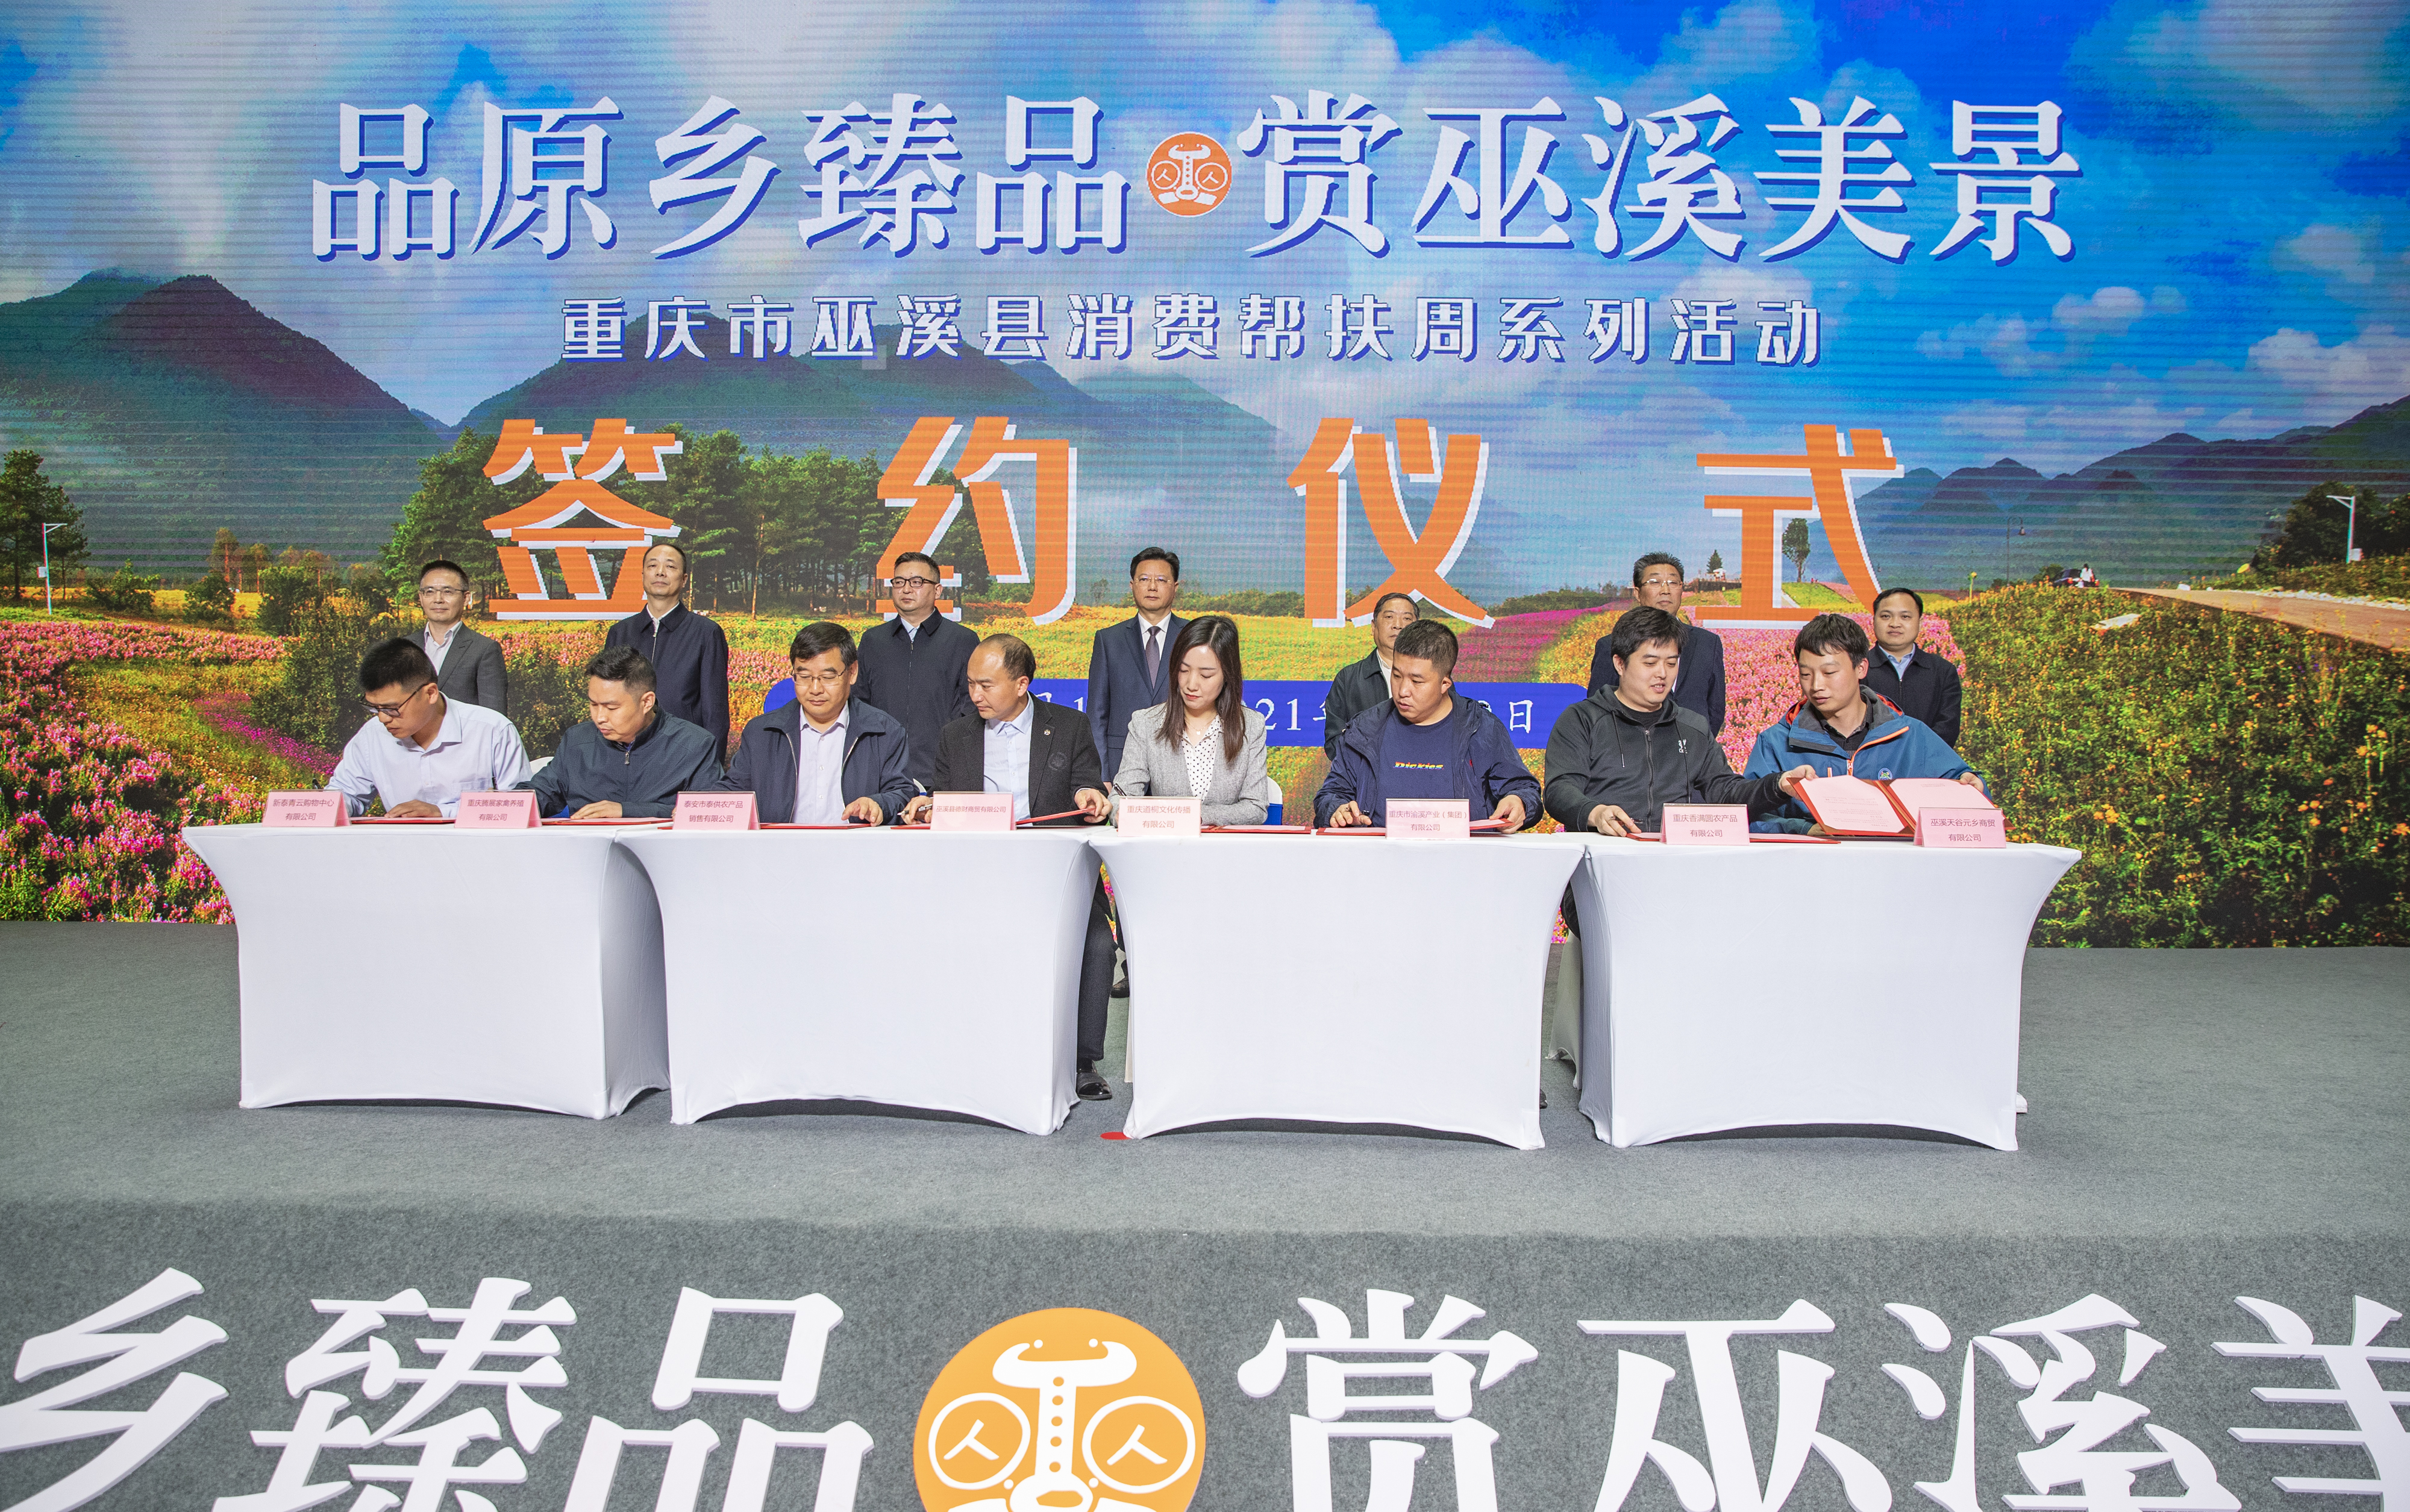 Wuxi and consumption support enterprises signed purchase contracts.